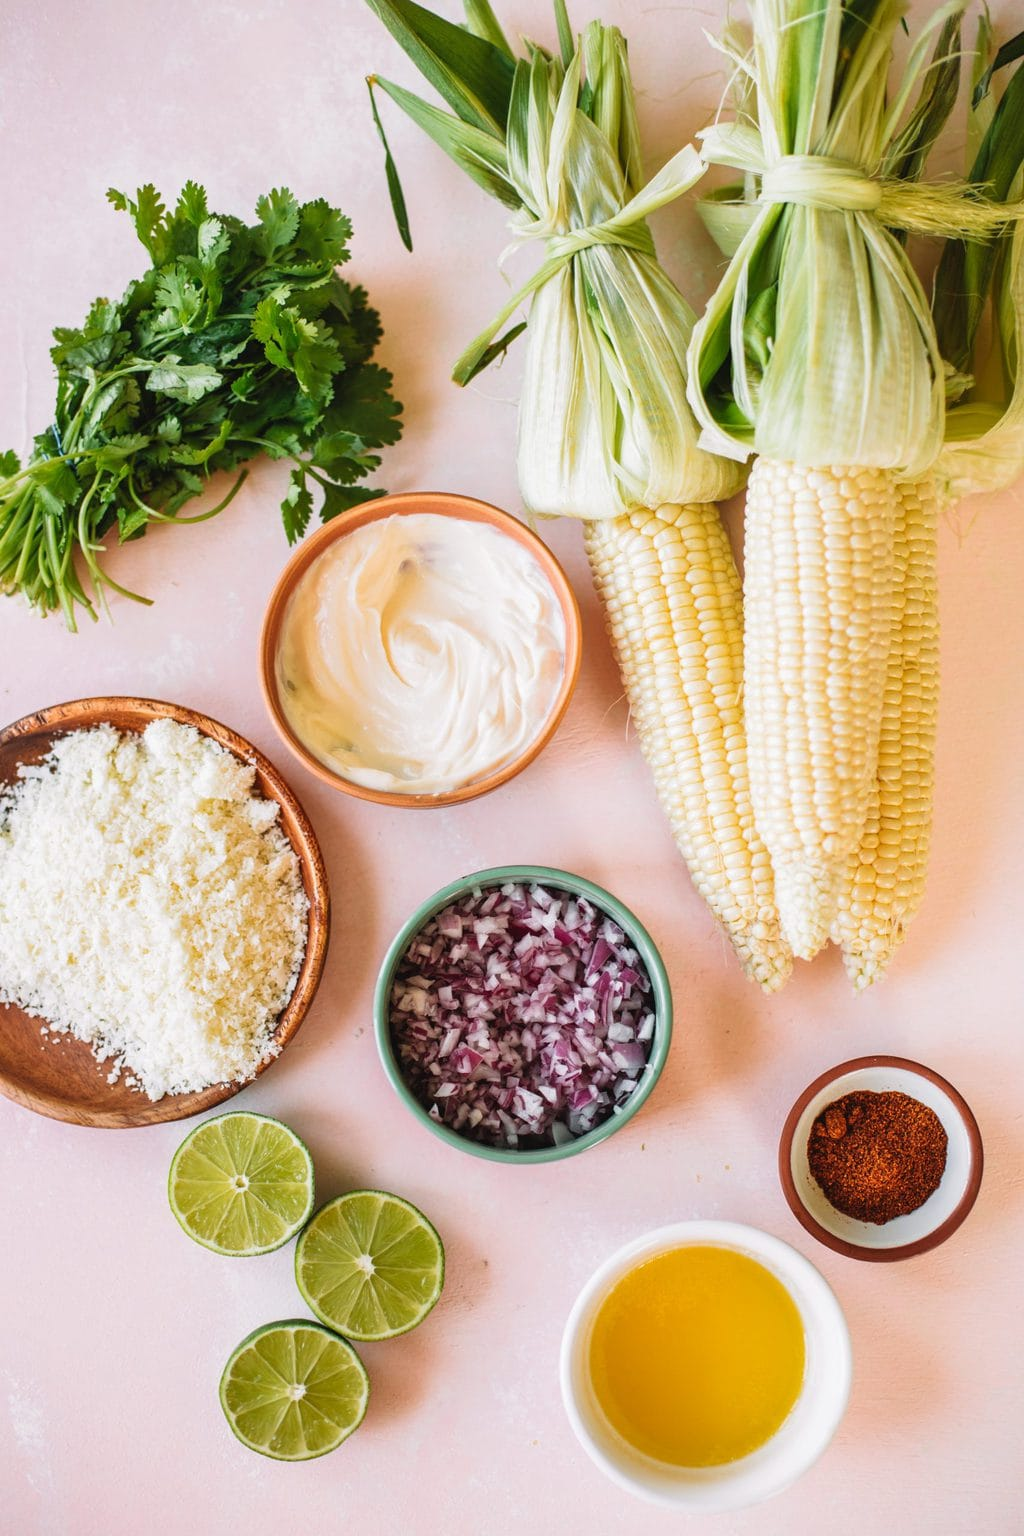 Cotija cheese, mayonnaise, red onion, limes, corn, chili powder, and melted butter.